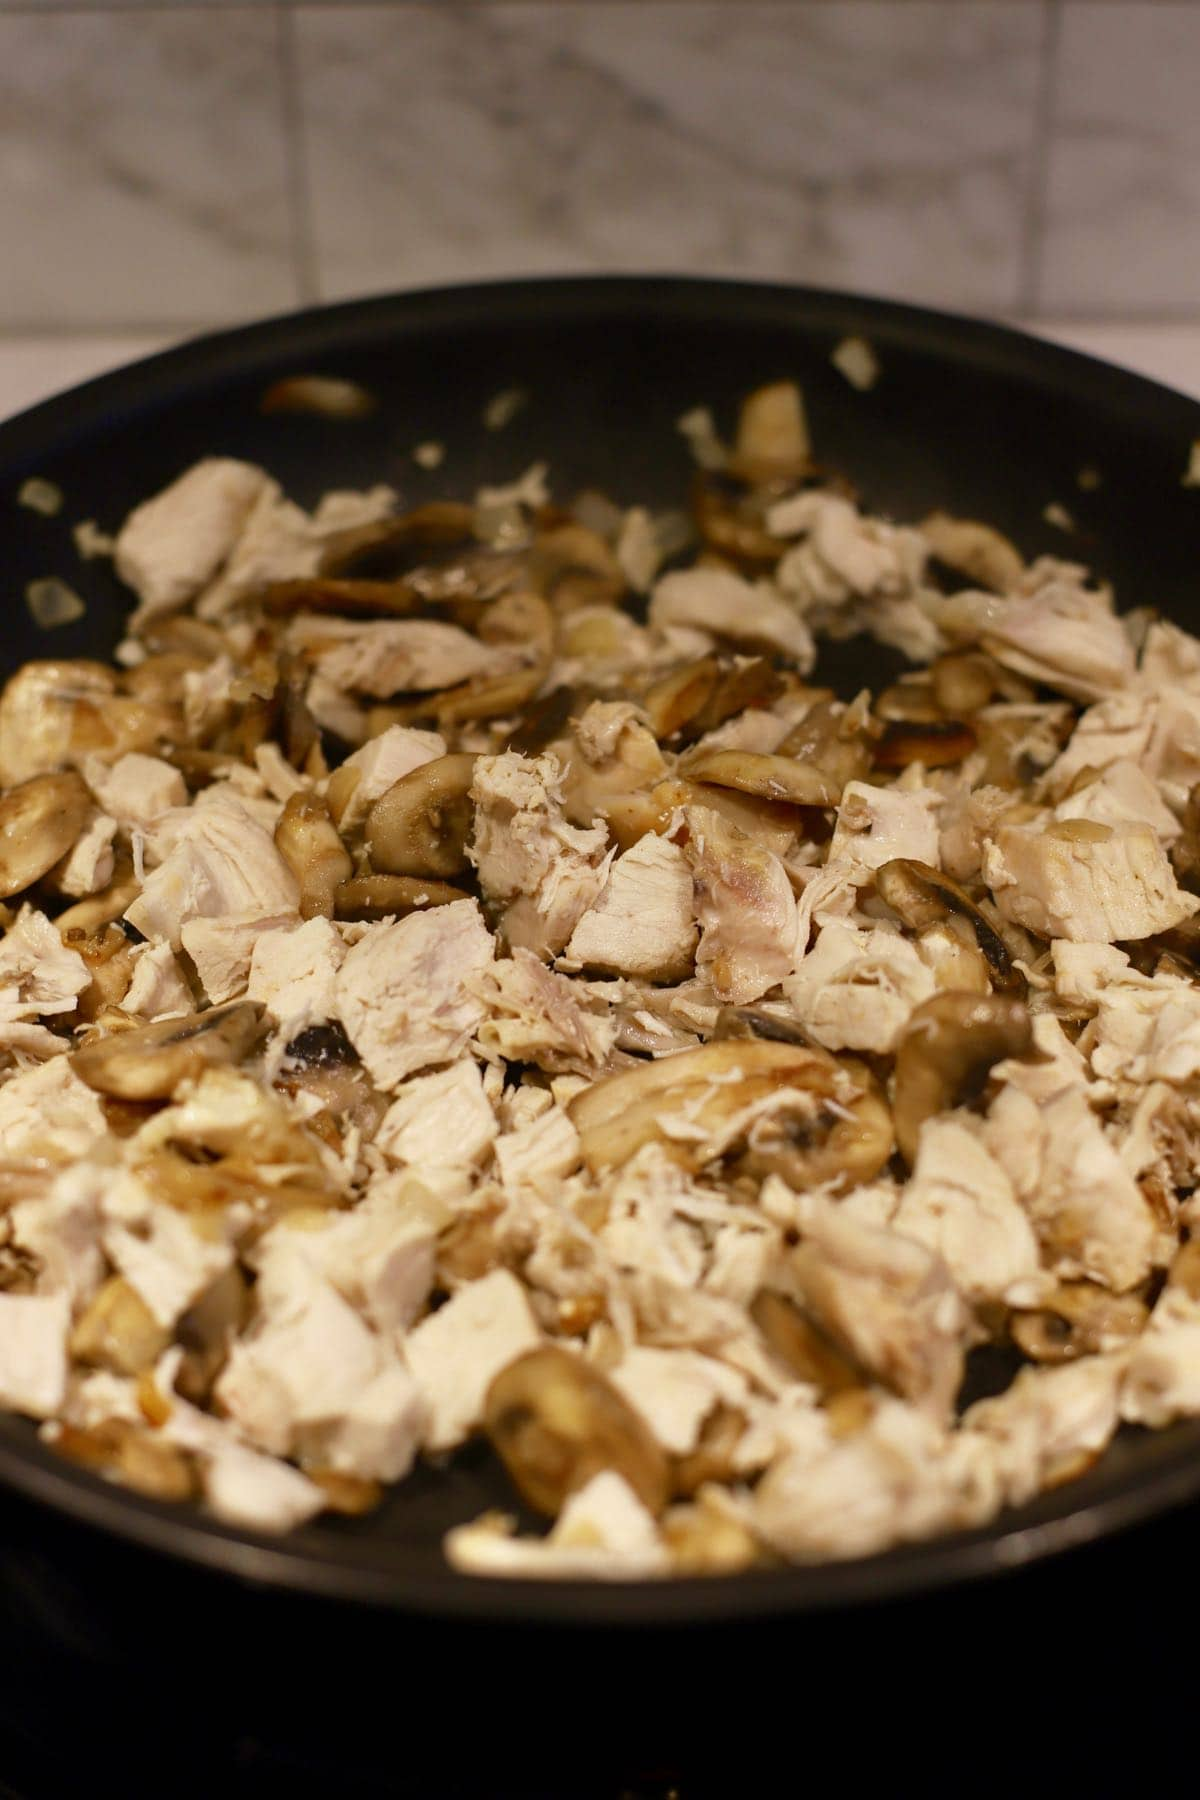 Pieces of cooked chicken and sliced mushrooms in a skillet.